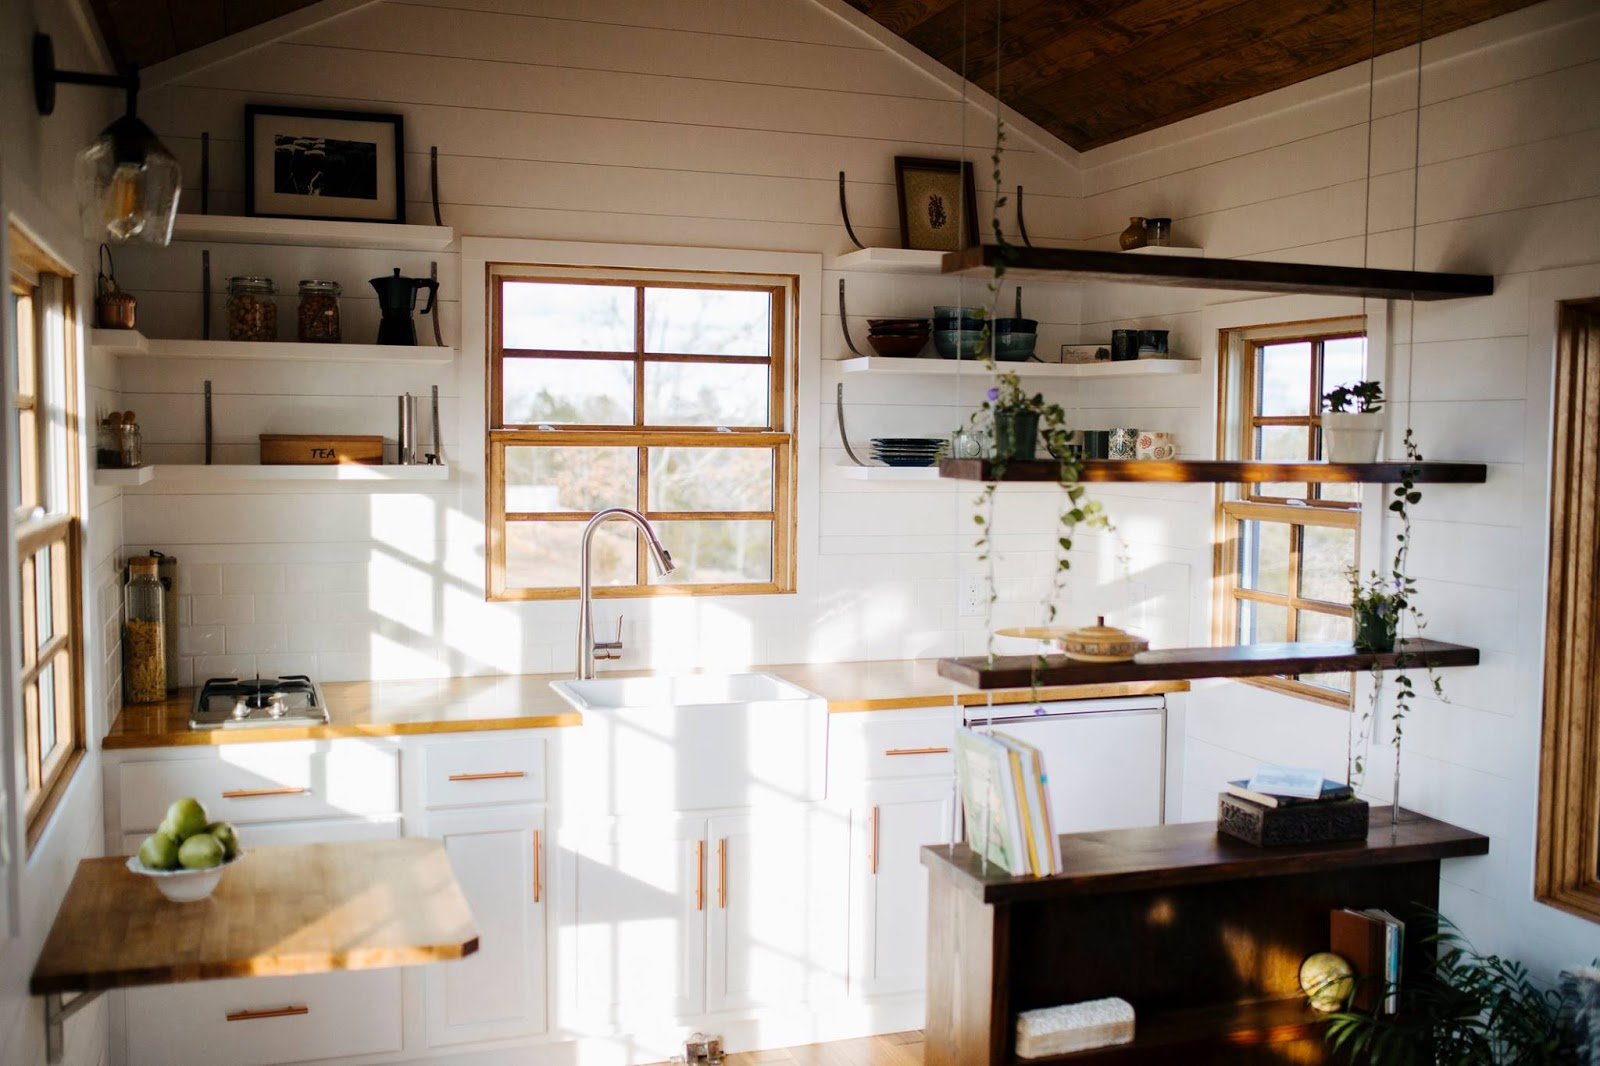 TINY HOUSE TOWN: The Monocle By Wind River Tiny Homes